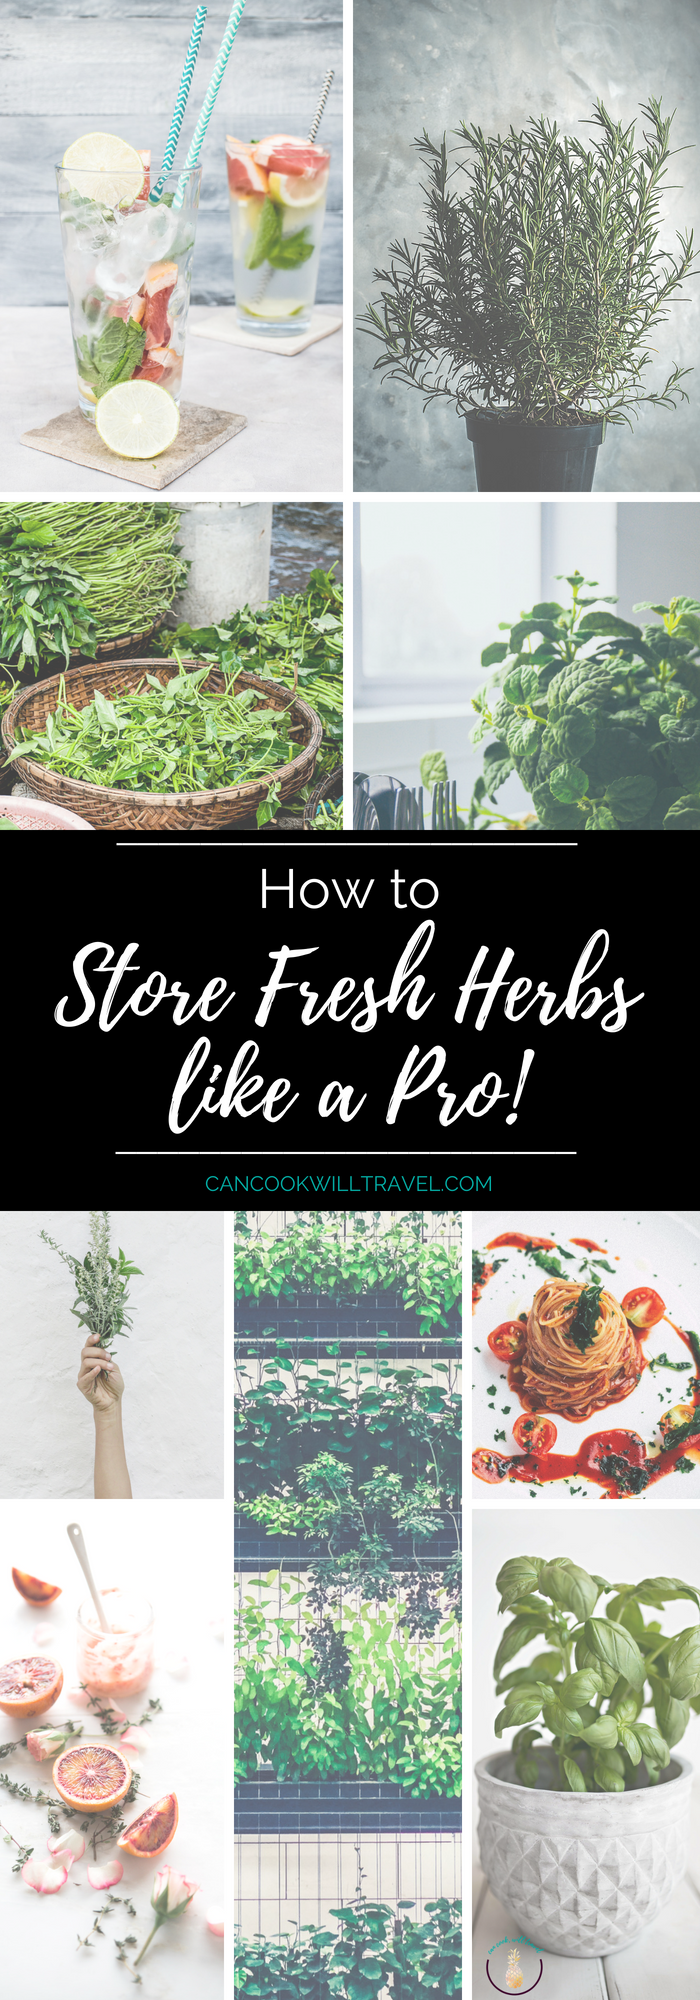 How to Store Fresh Herbs_Tall